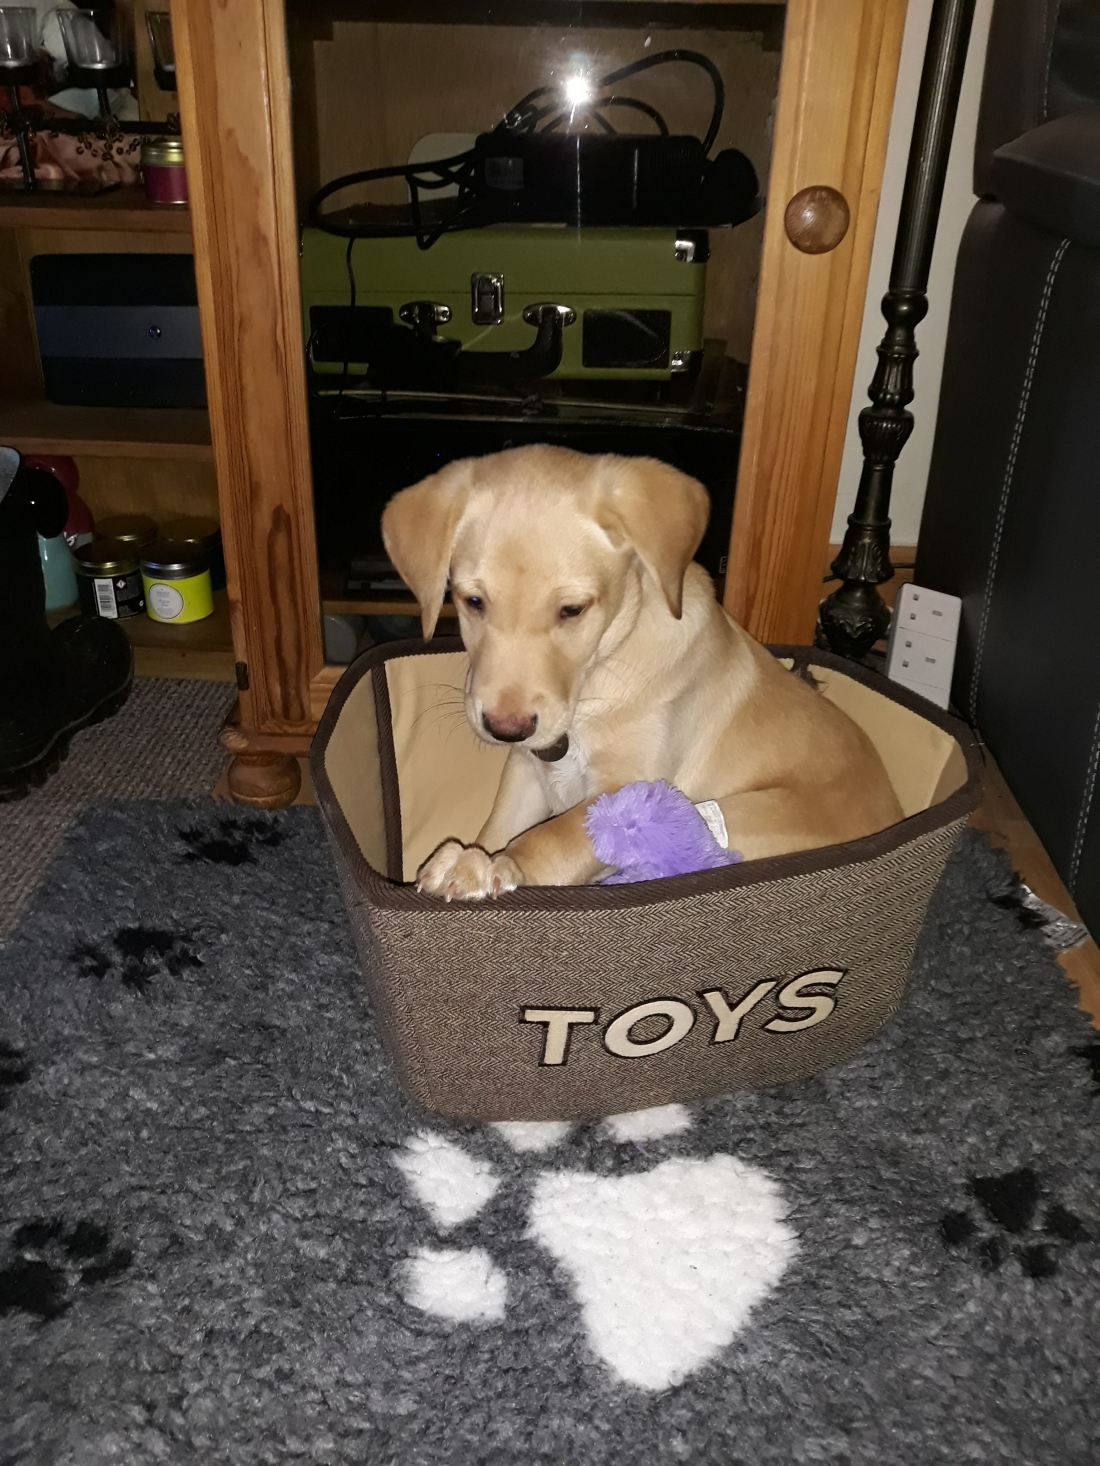 in the toy box again